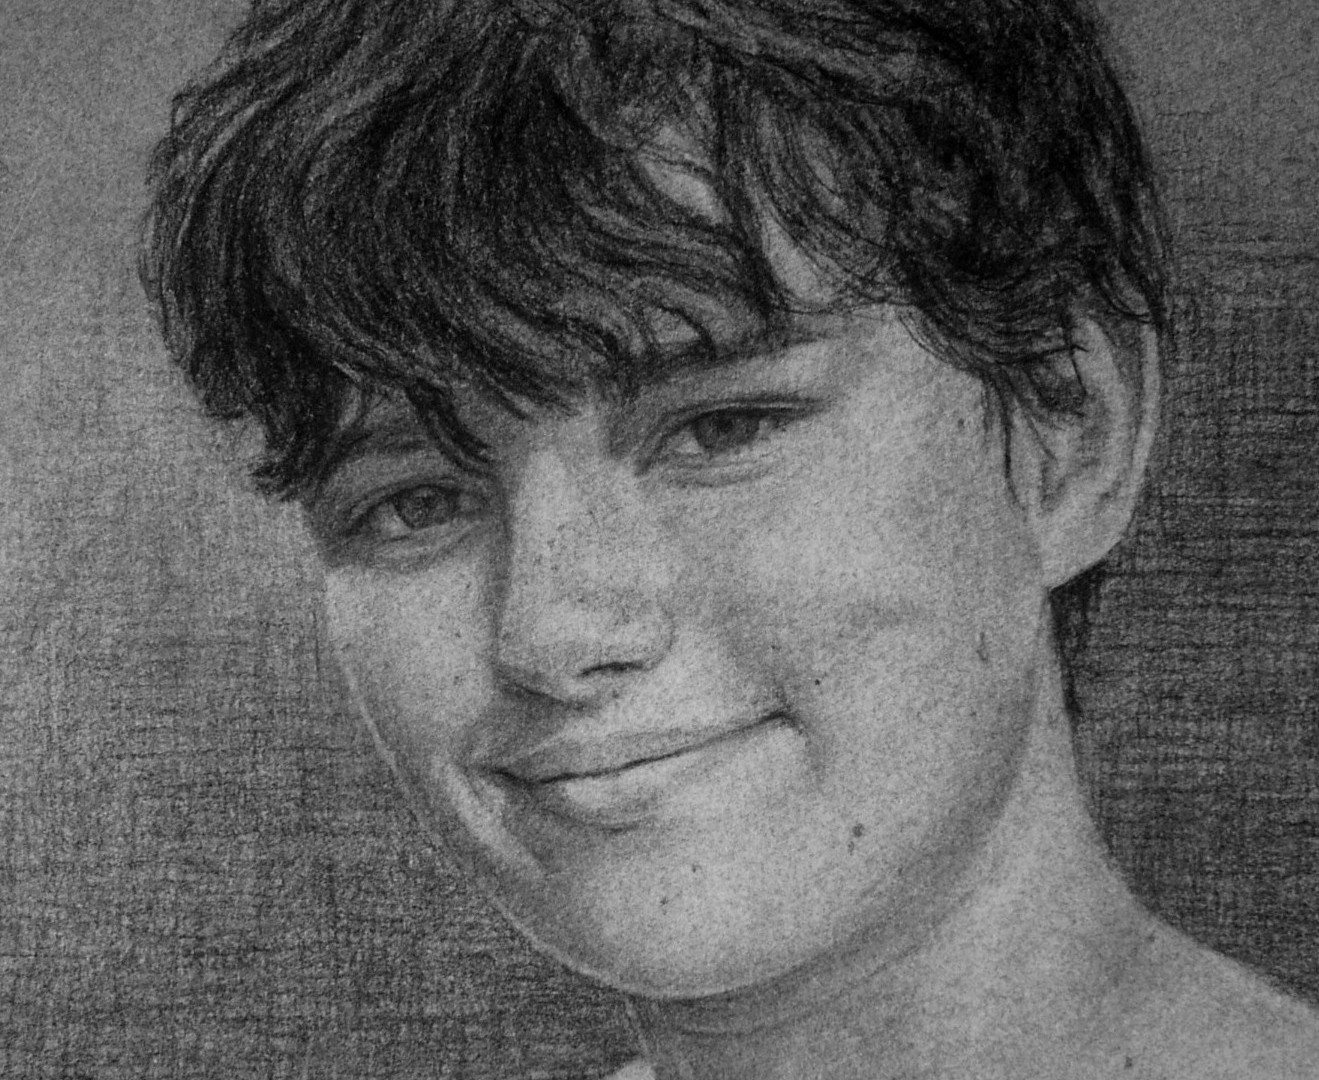 Teenager-portrait-charcoal_edited_edited